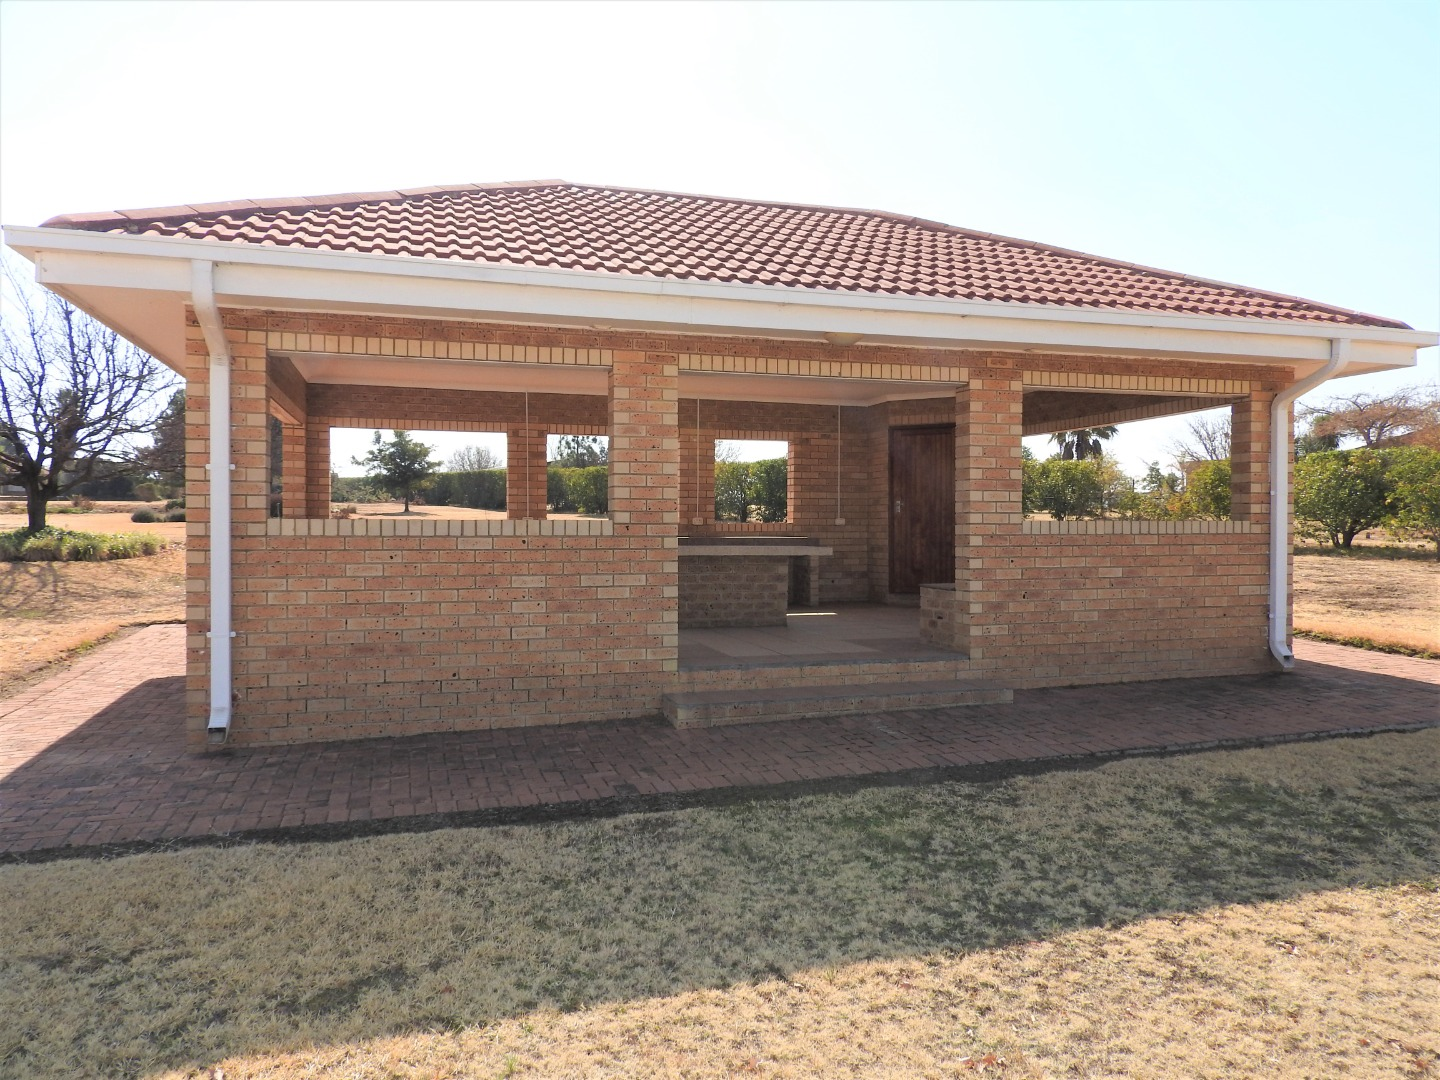 6 Bedroom House For Sale in Vaal Marina